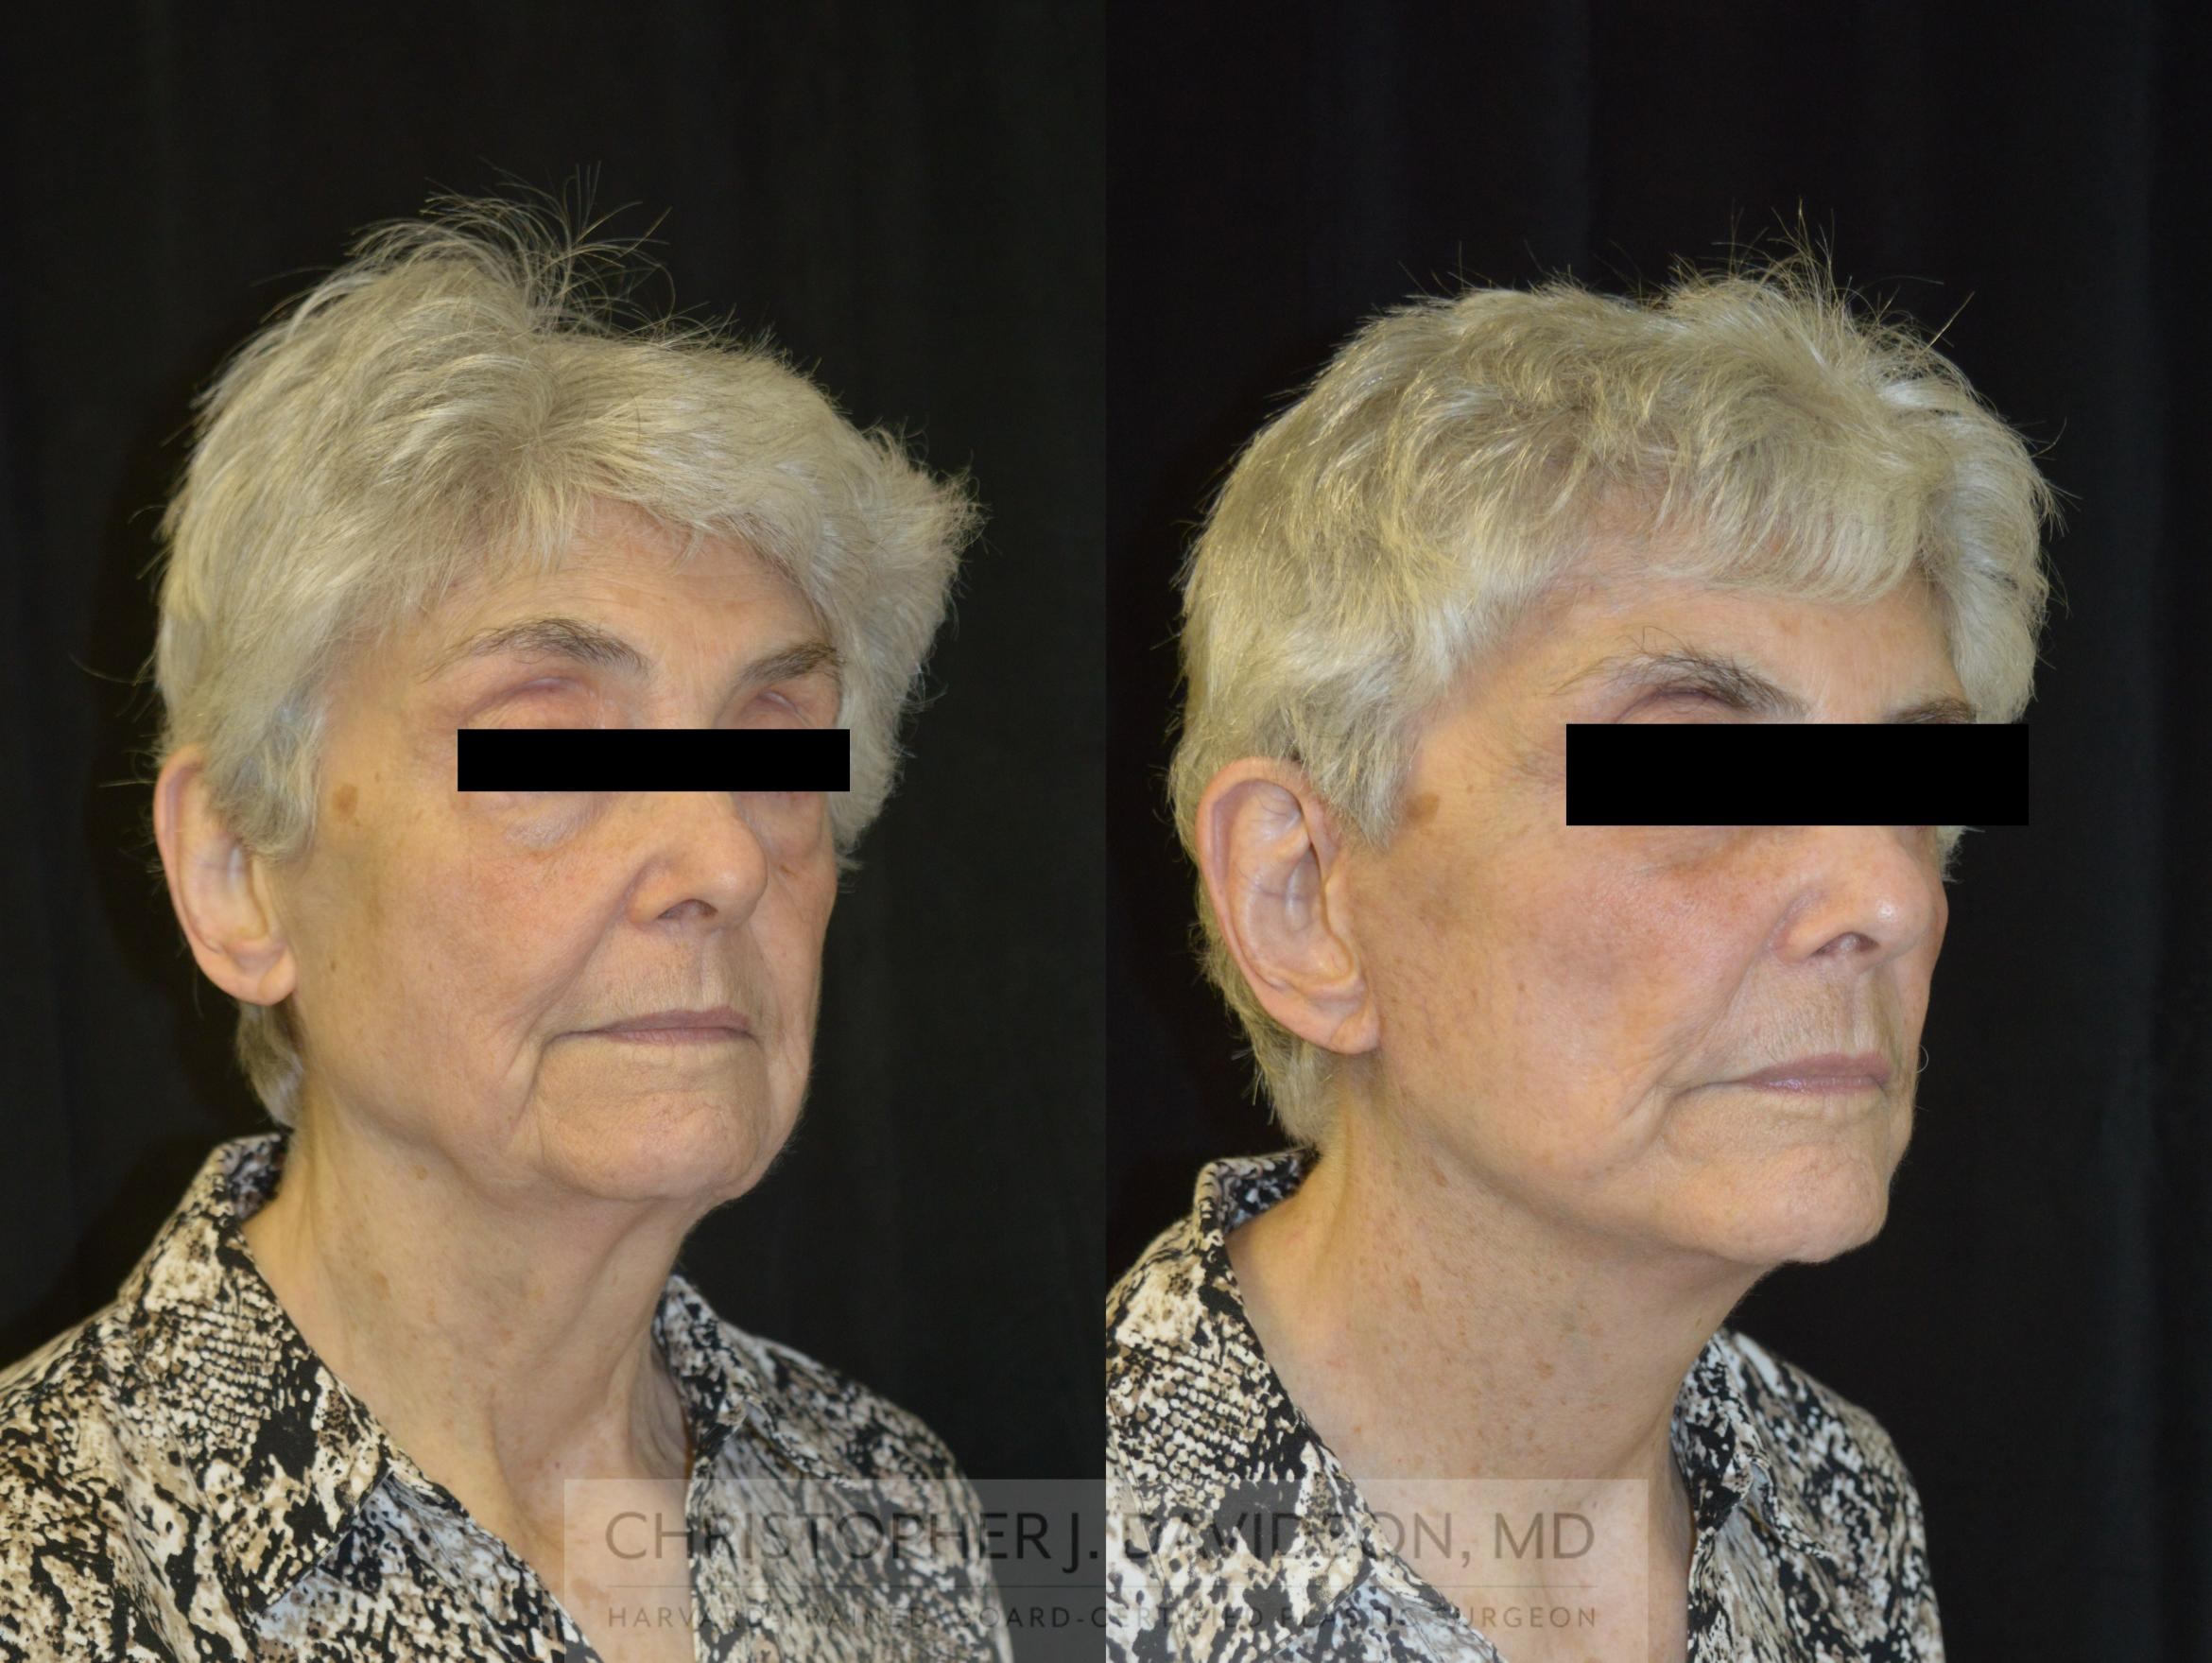 Facelift Surgery Case 233 Before & After View #2 | Wellesley, MA | Christopher J. Davidson, MD